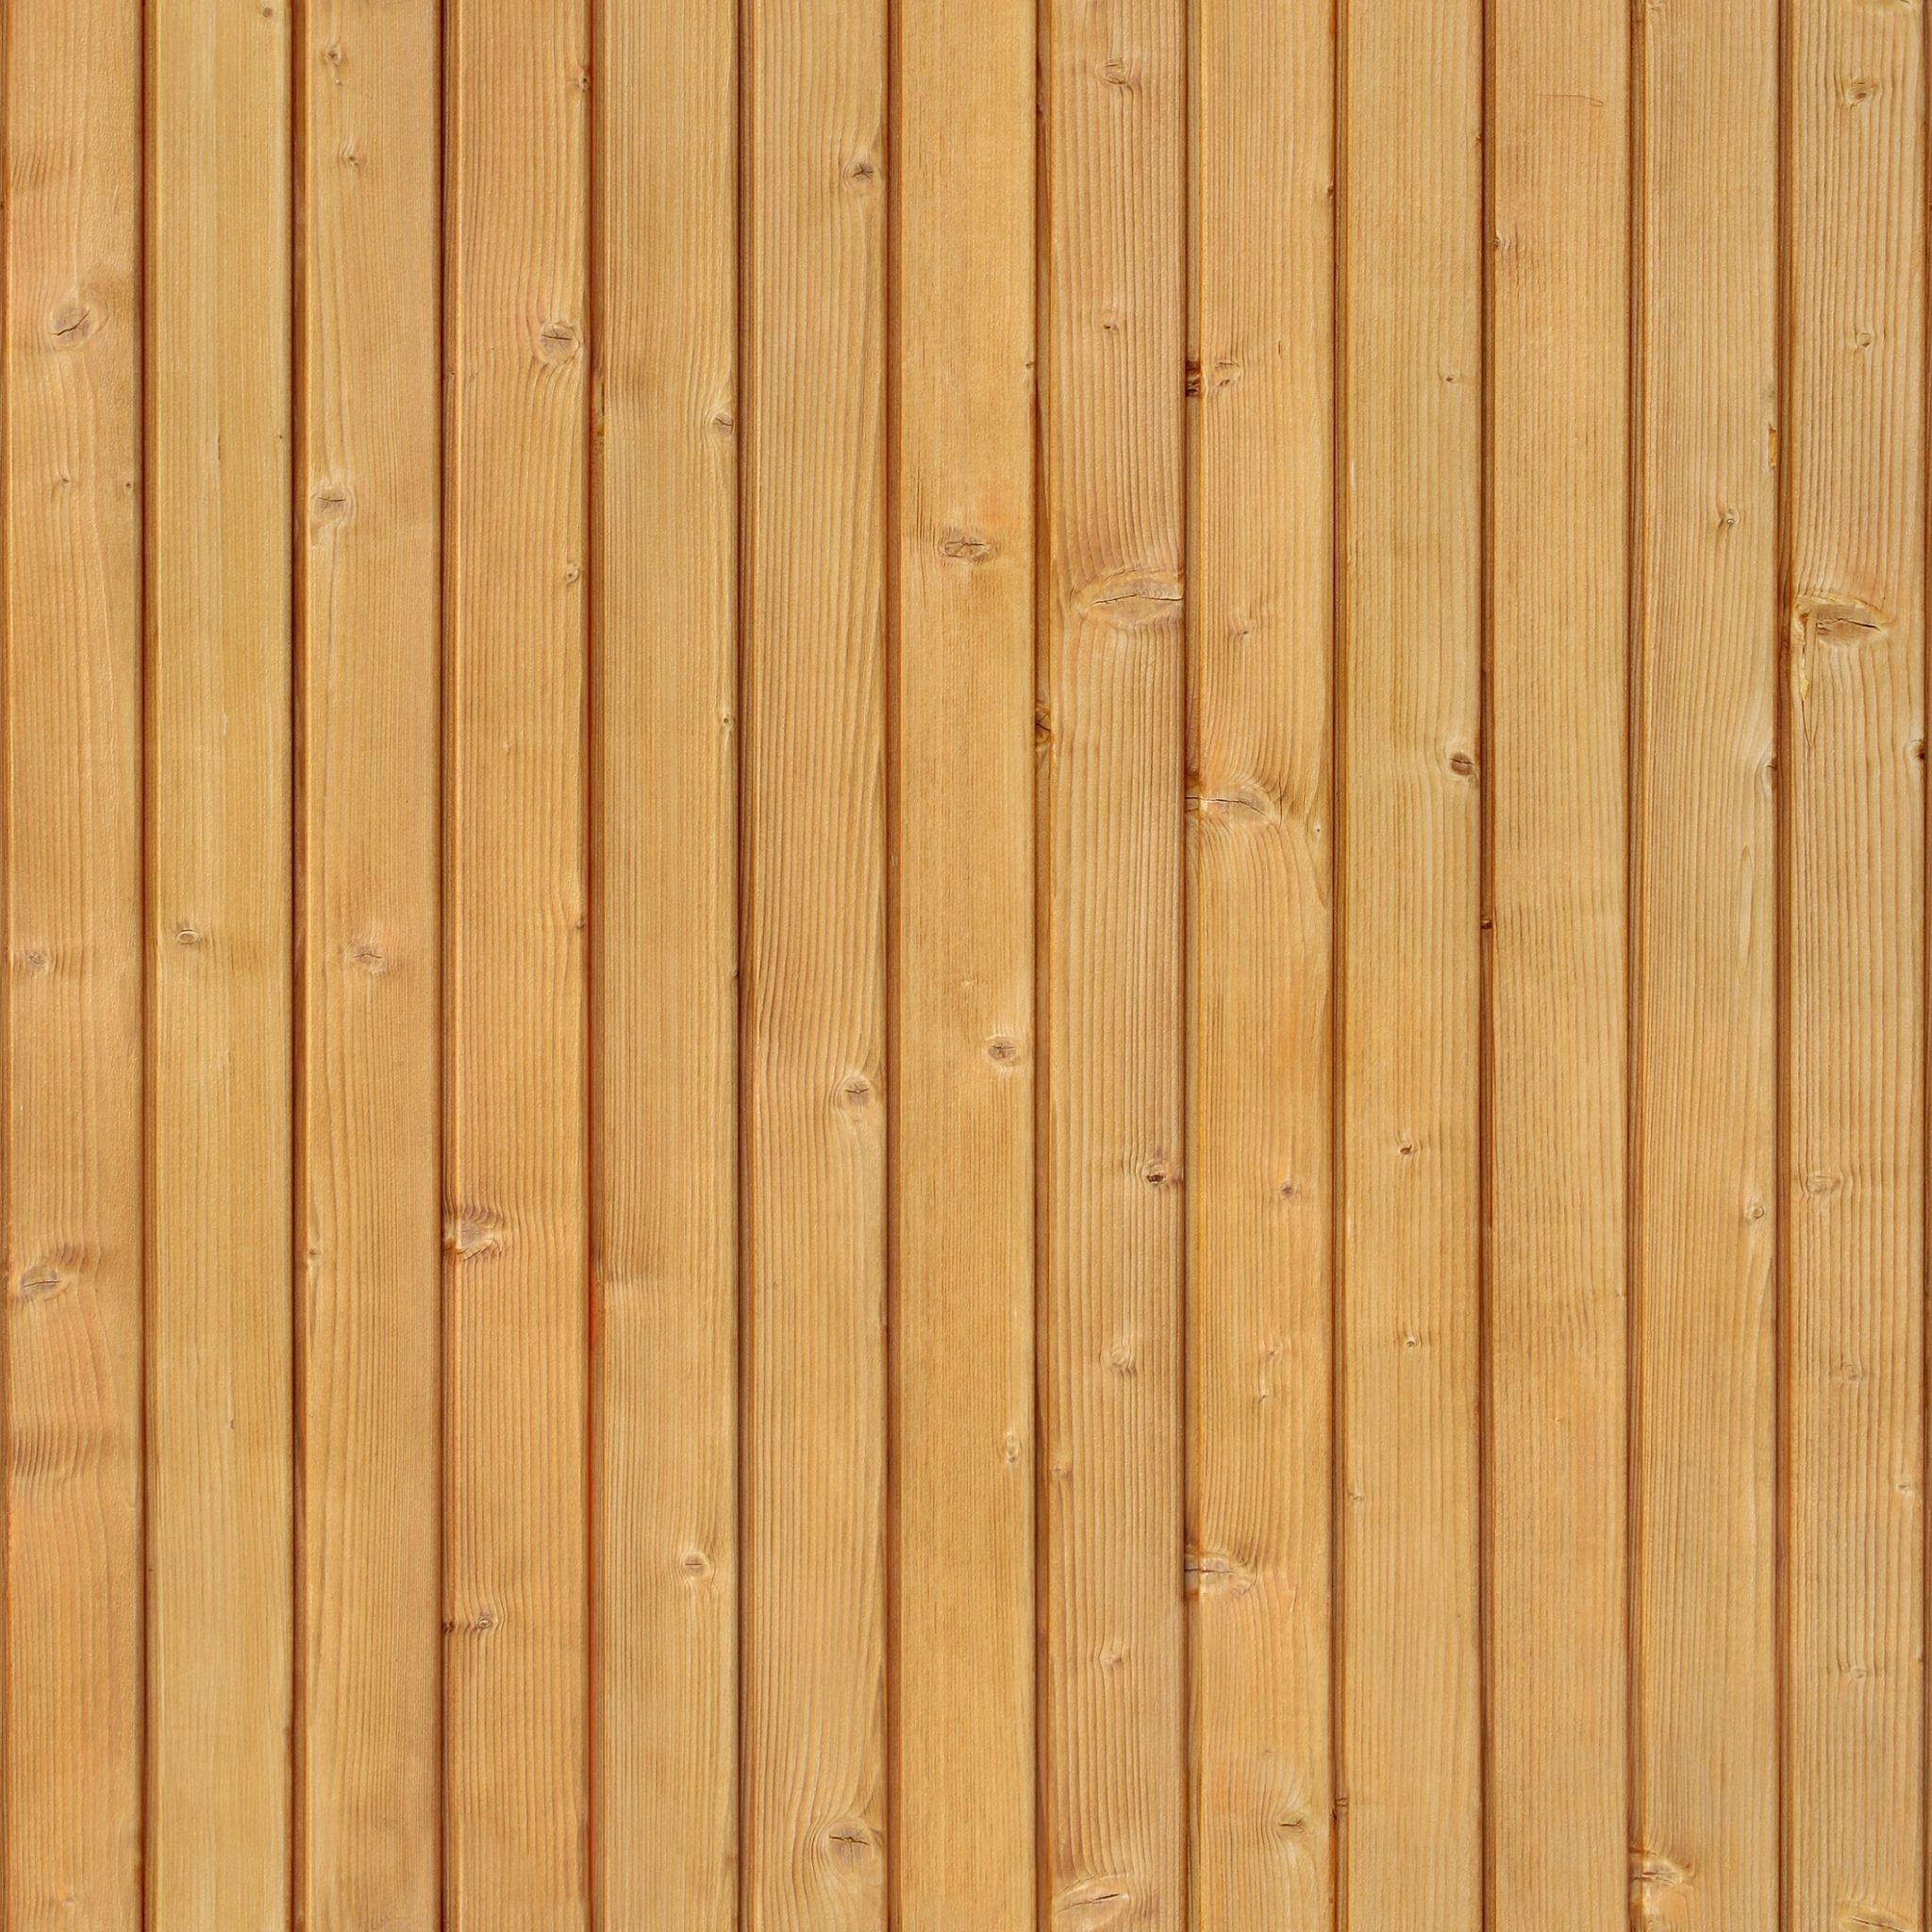 Wood Cab Be Cut In Different Thicknesses And Can Be Piled